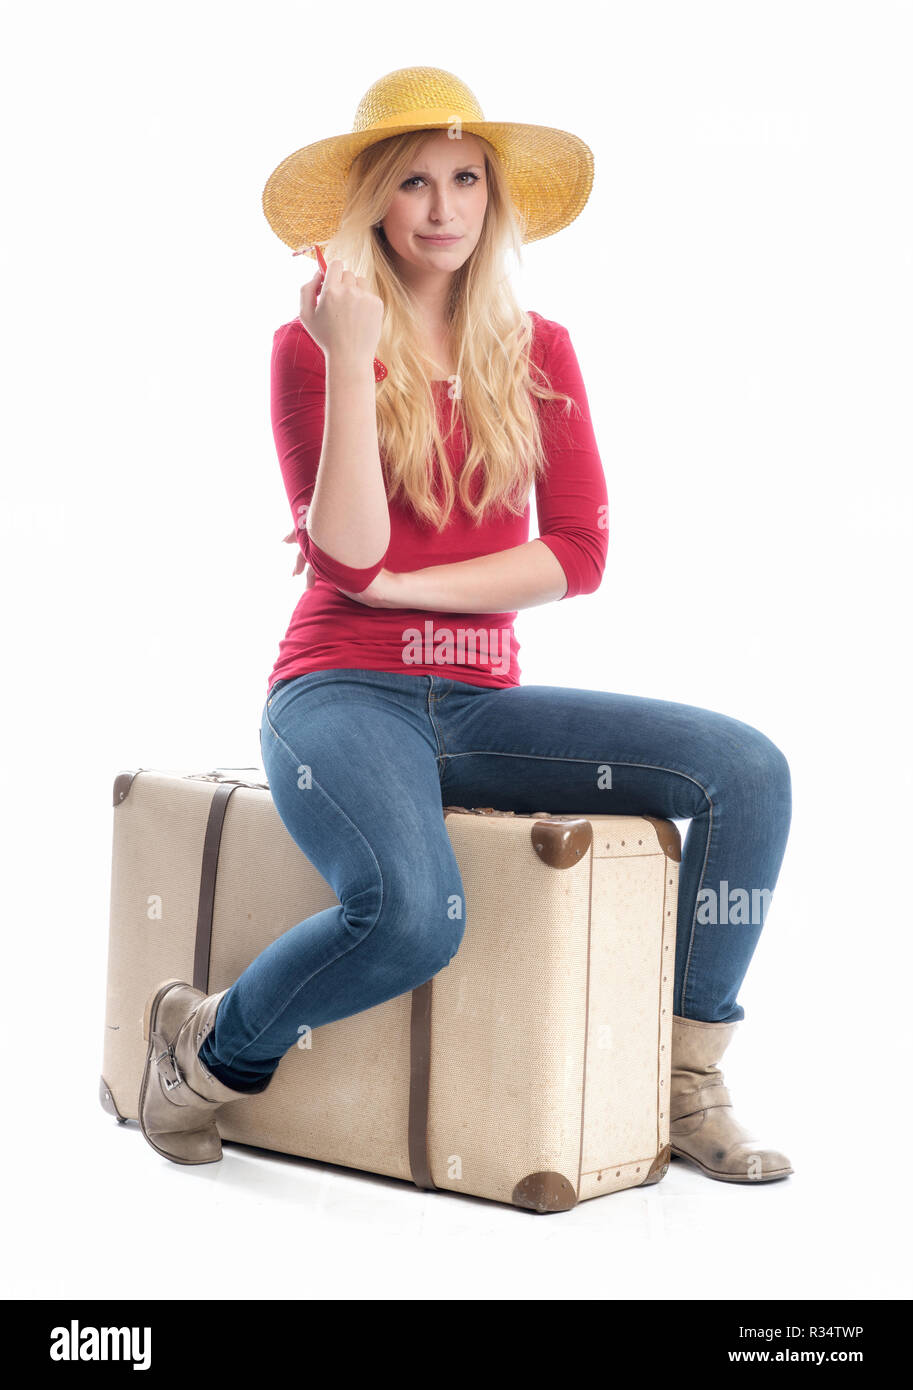 woman sitting on suitcase - Stock Image